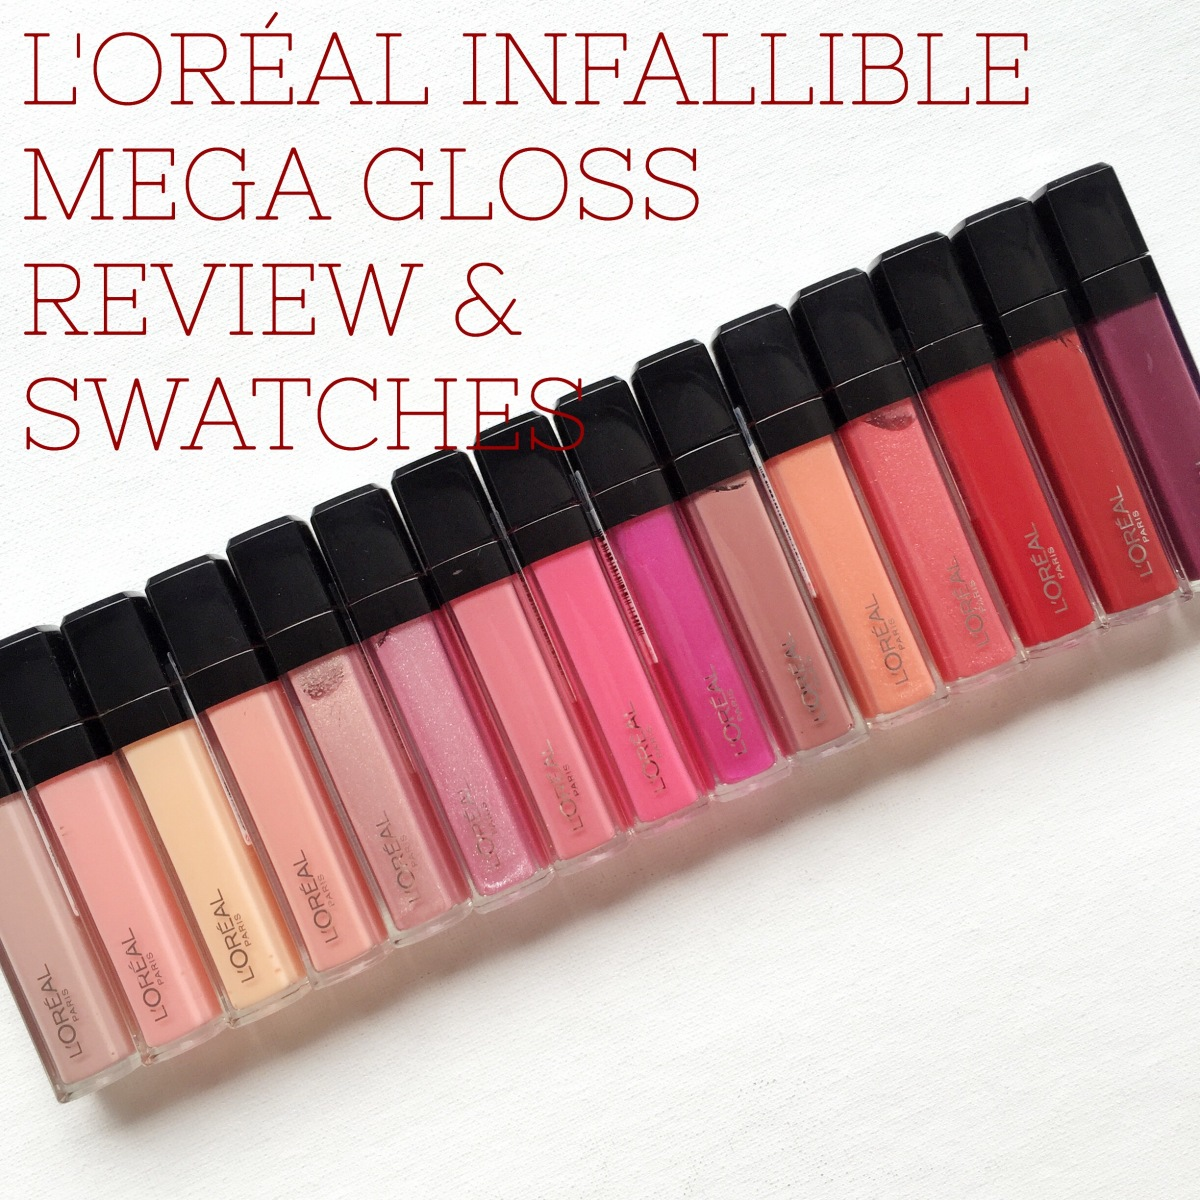 L'Oreal Paris Infallible Mega Gloss Review & Swatches